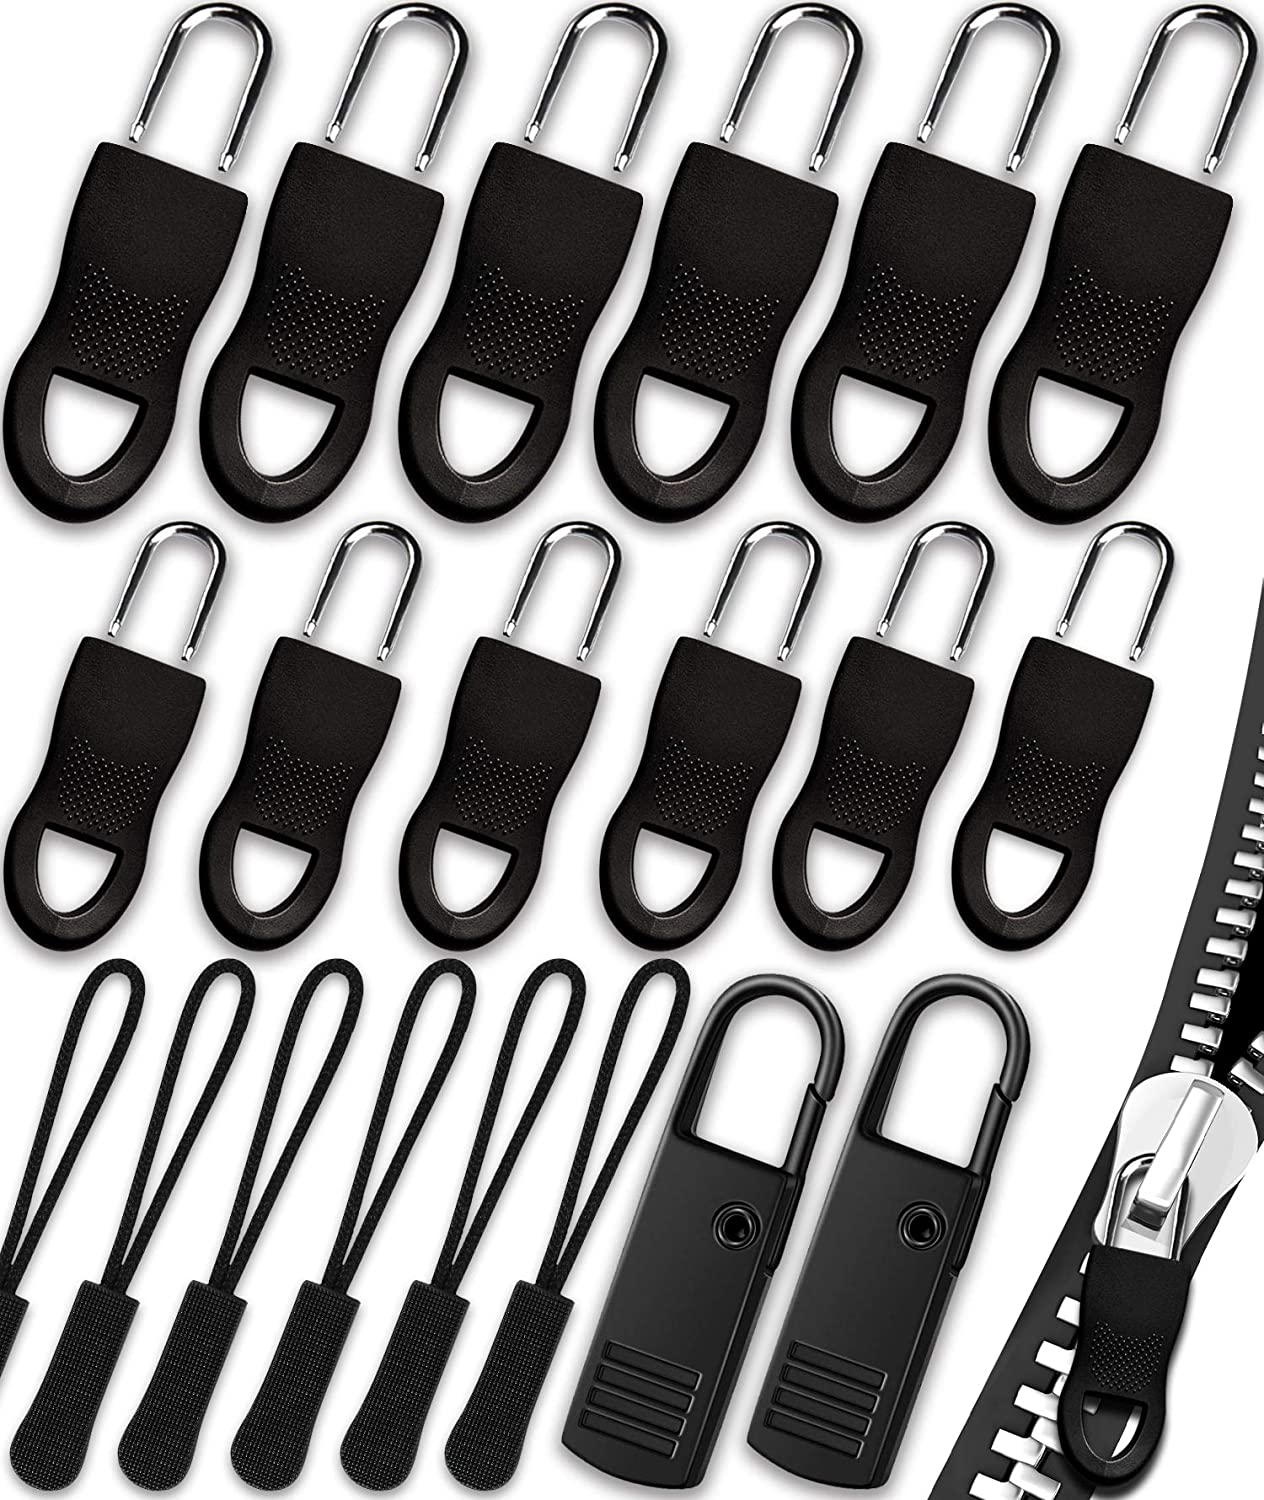 Zipper Pull Universal Replacement Kit Zi Removable Sale SALE% OFF Mail order